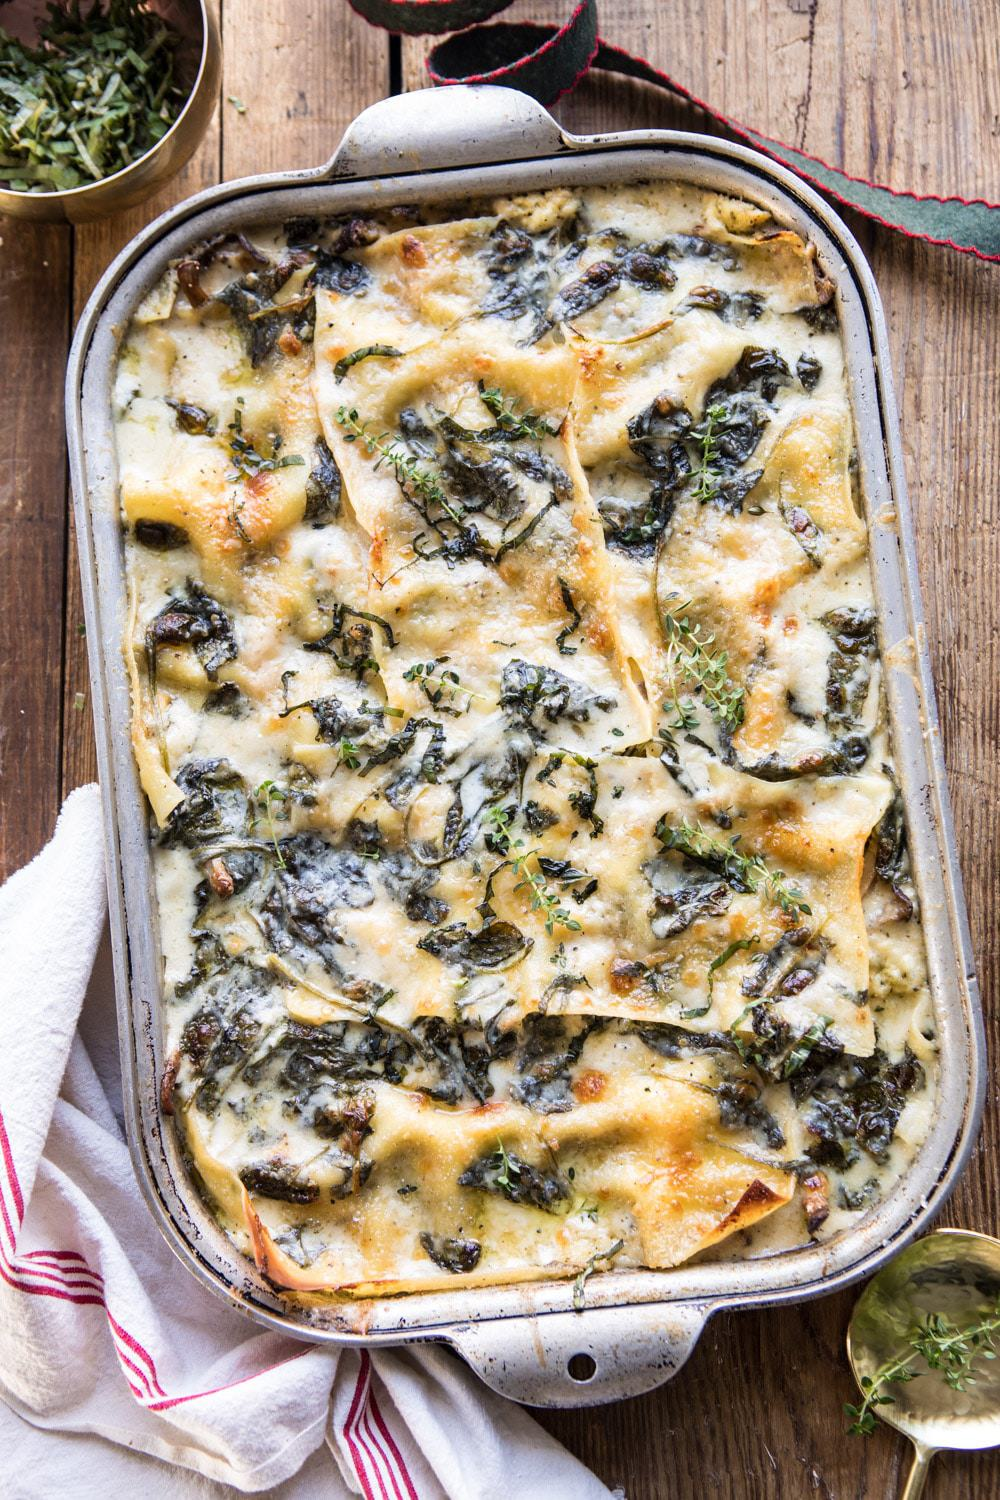 White Pesto Spinach Lasagna with Tieghan Gerard of Half Baked Harvest | Rhyme & Reason